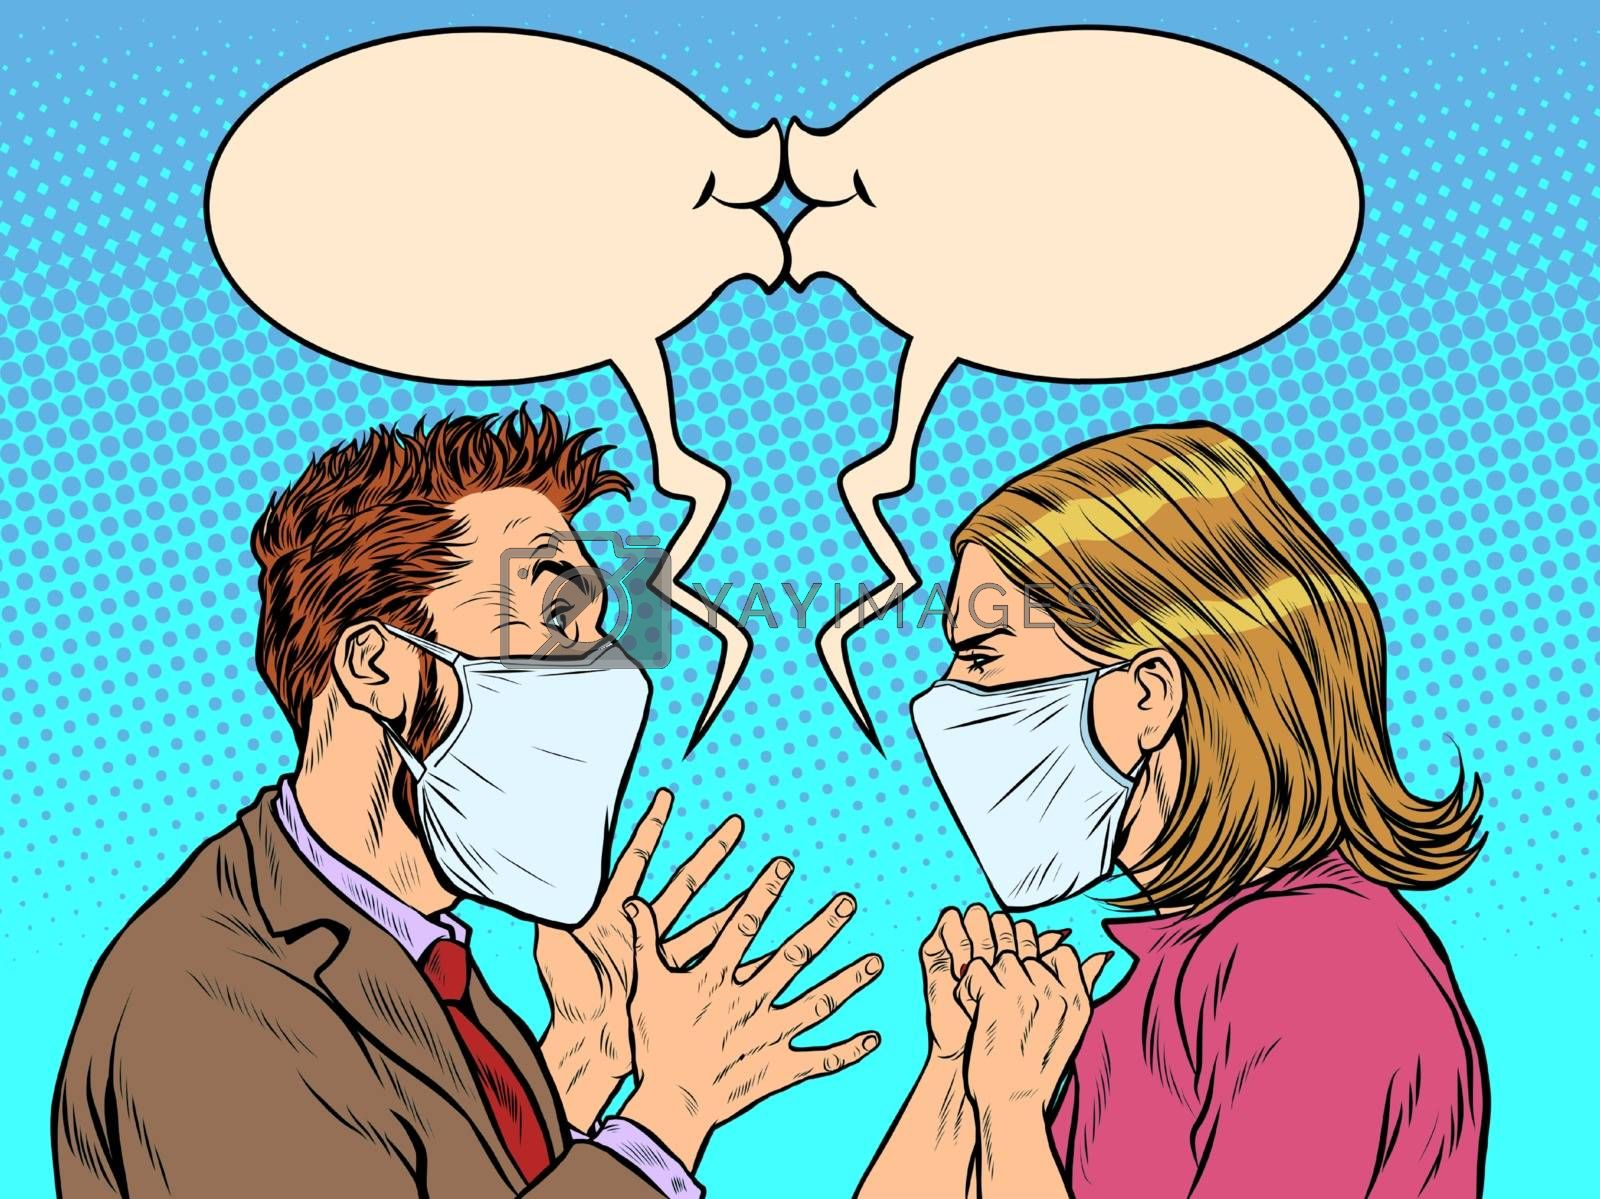 man and woman in medical masks kiss. Pop art retro vector illustration vintage kitsch 50s 60s style